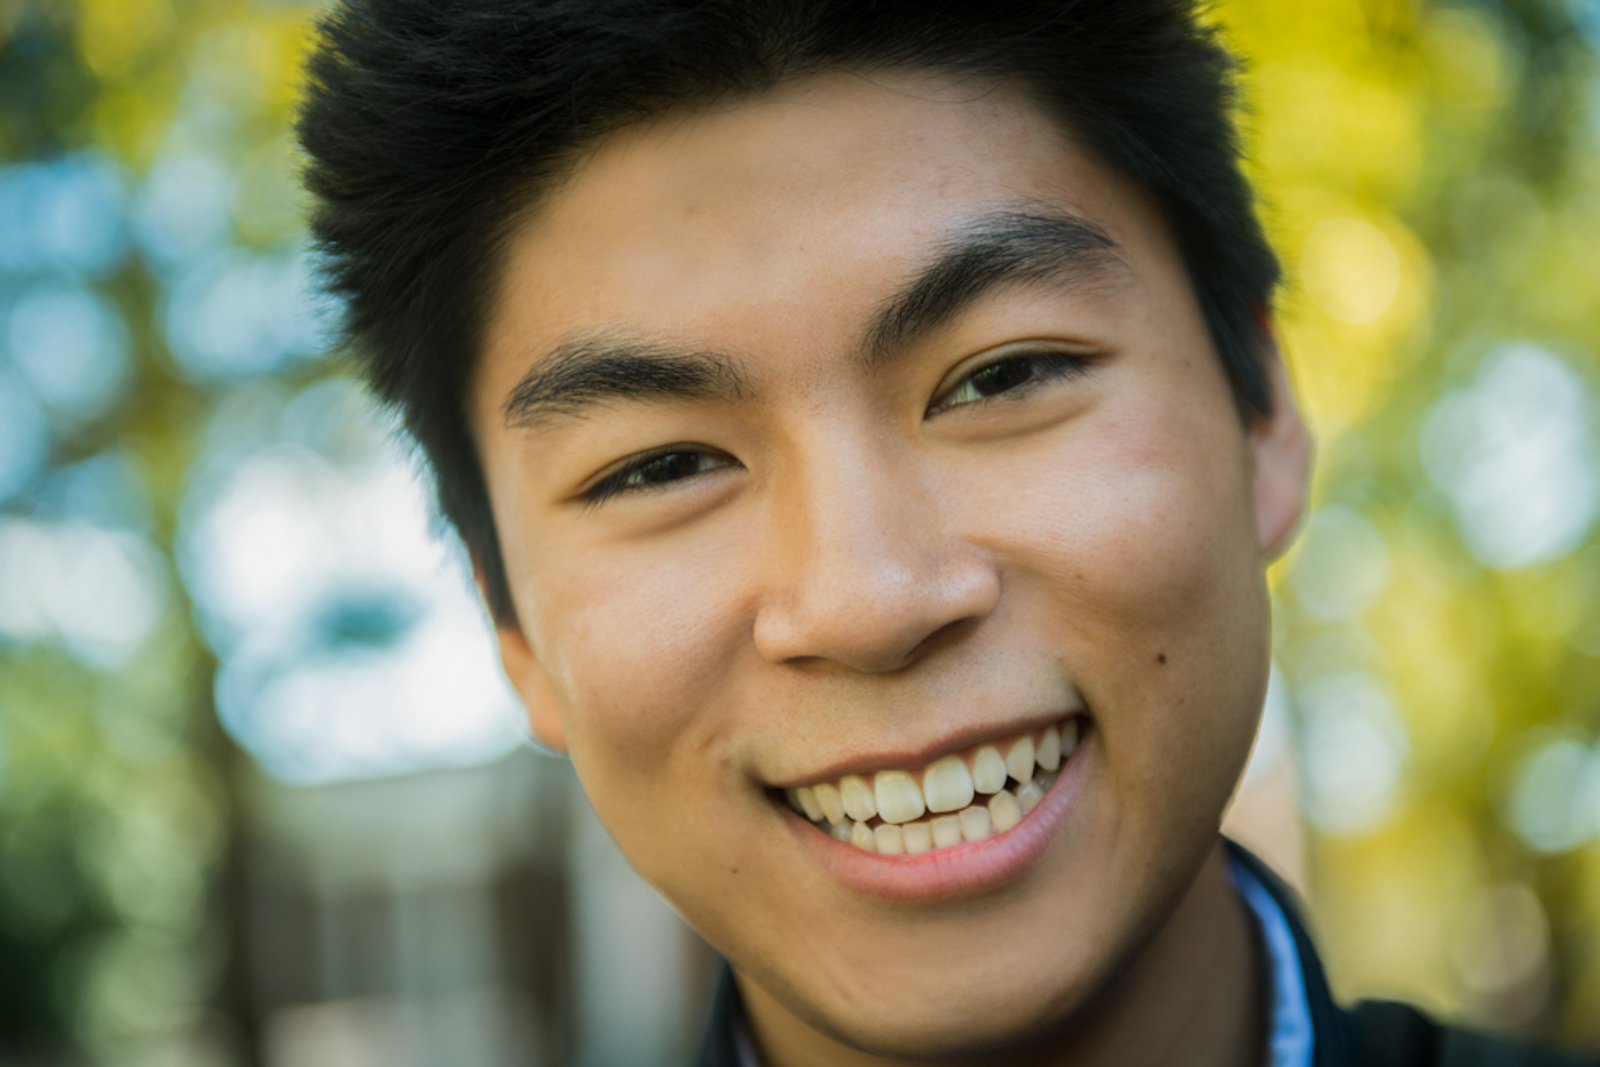 Close up of male student with a wide smile